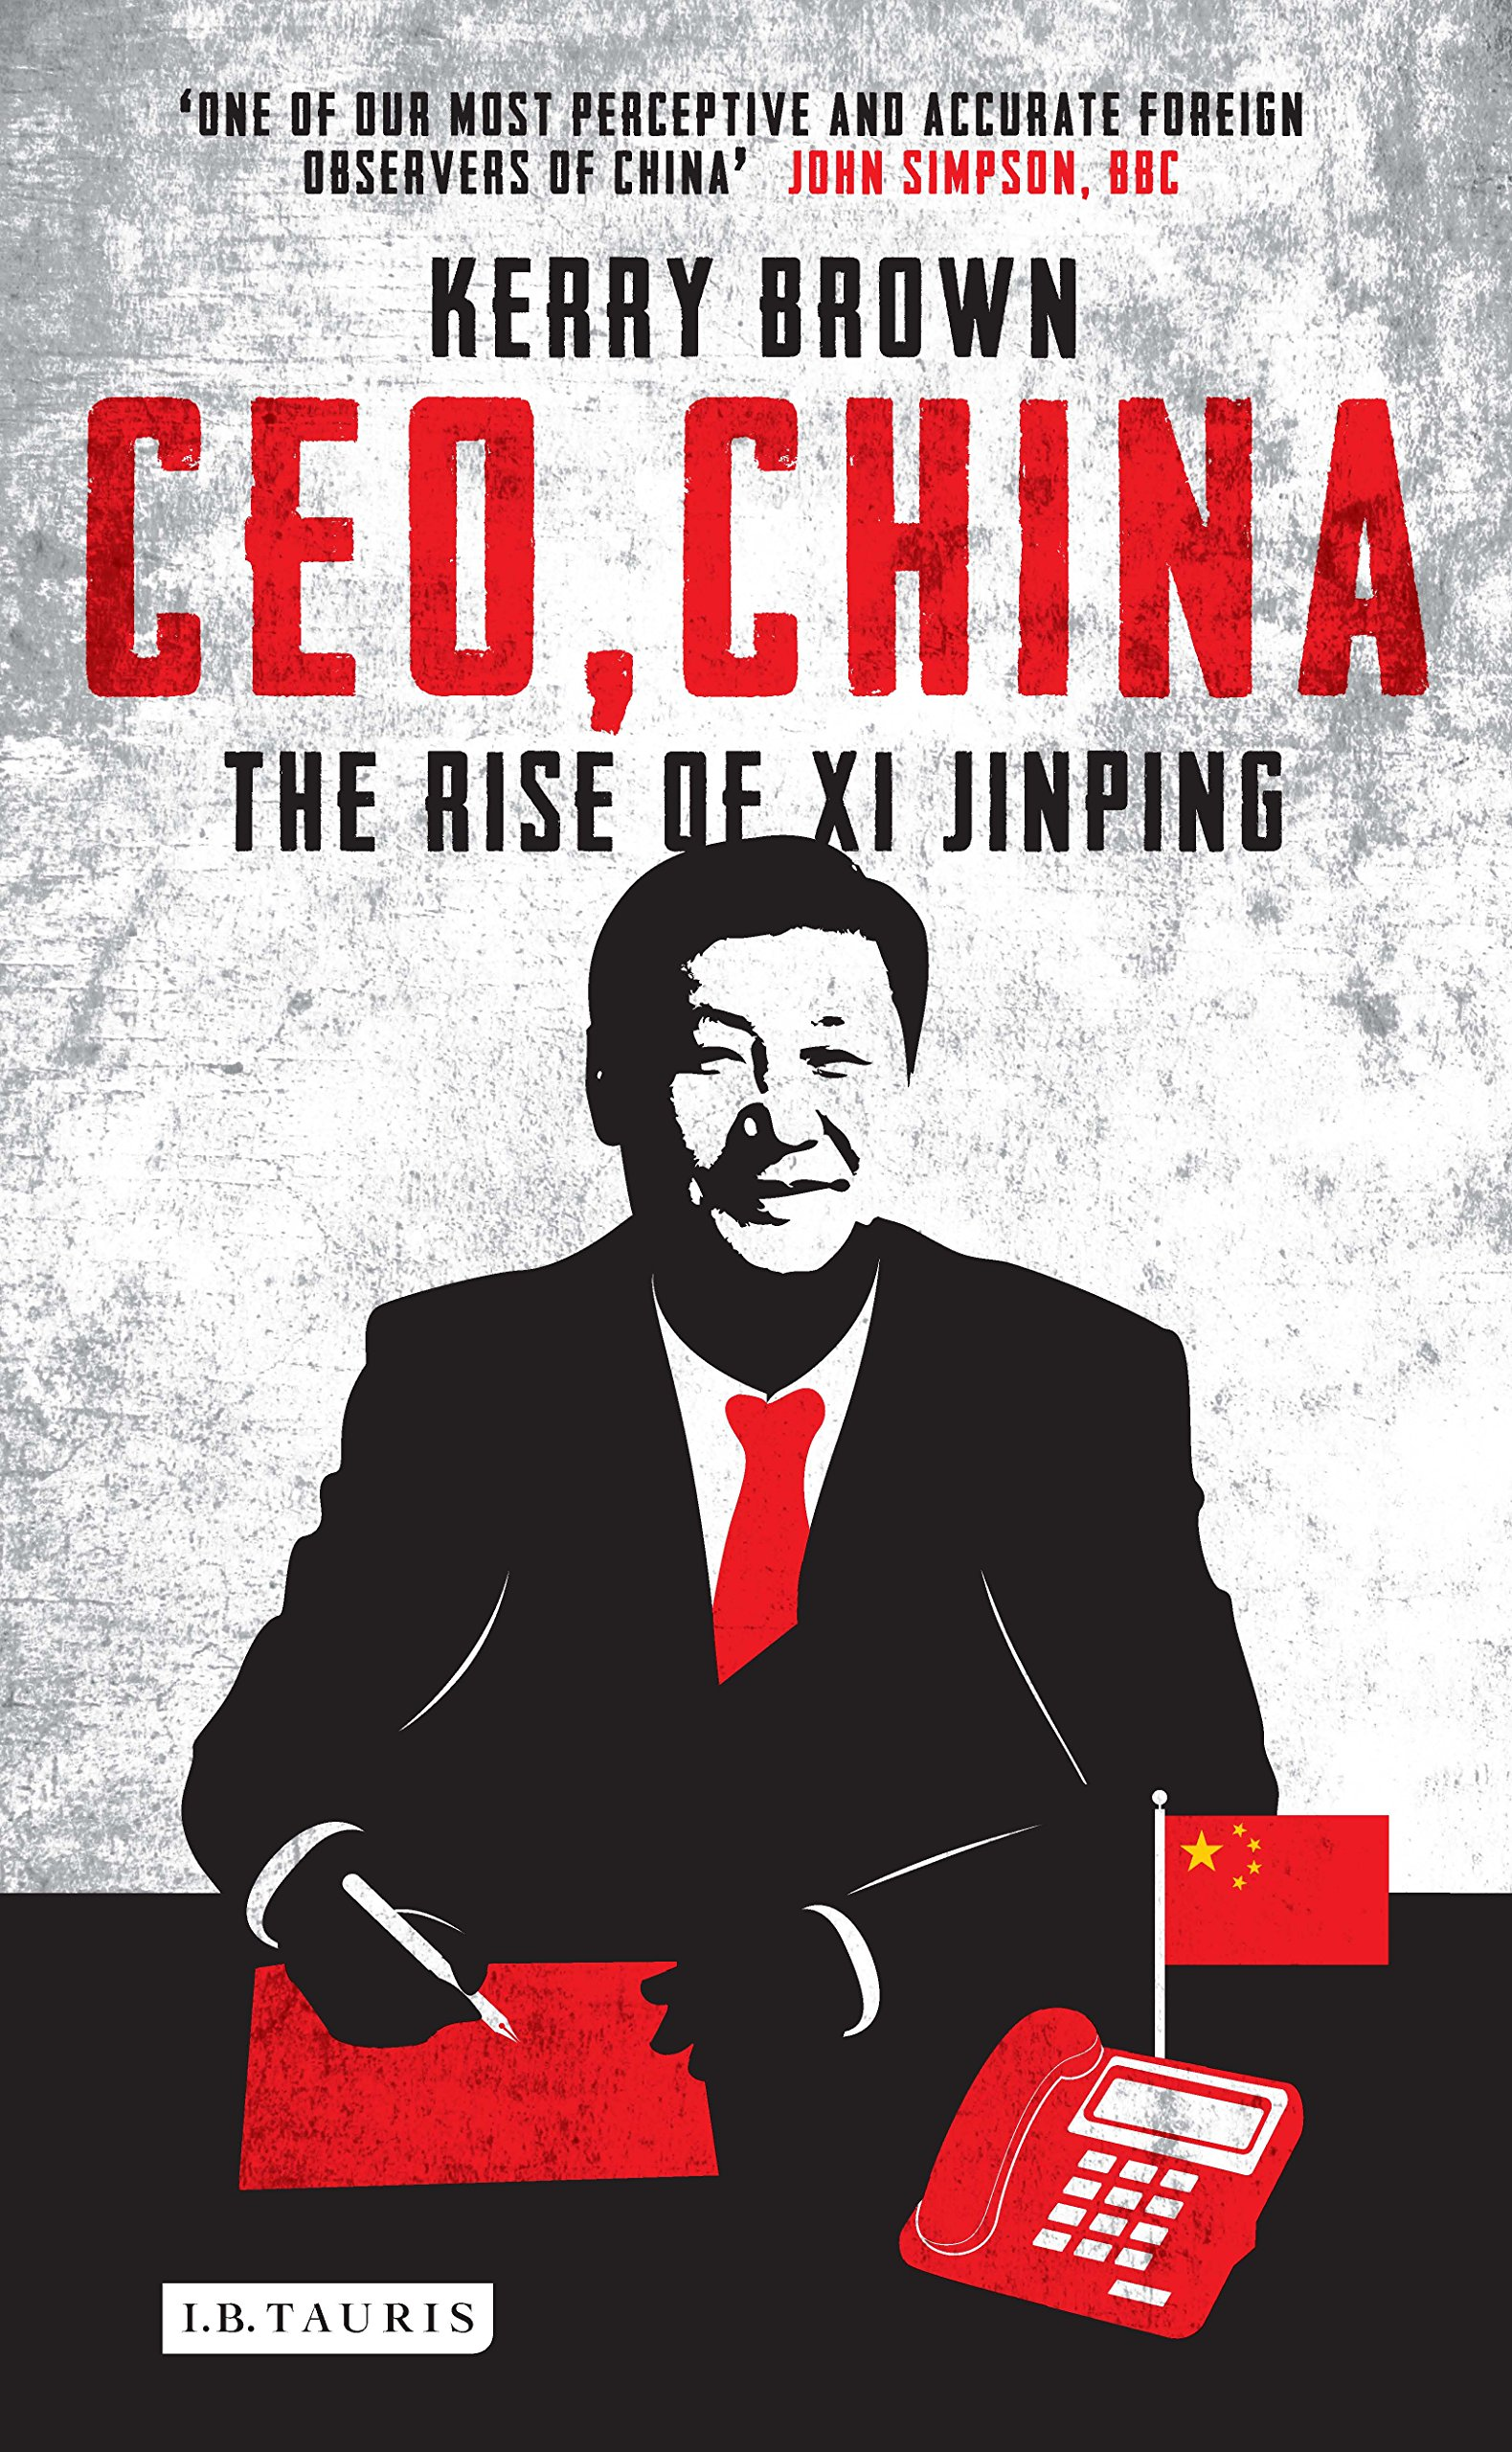 CEO, China: The Rise of Xi Jinping: Kerry Brown: 9781784533229: Amazon.com:  Books